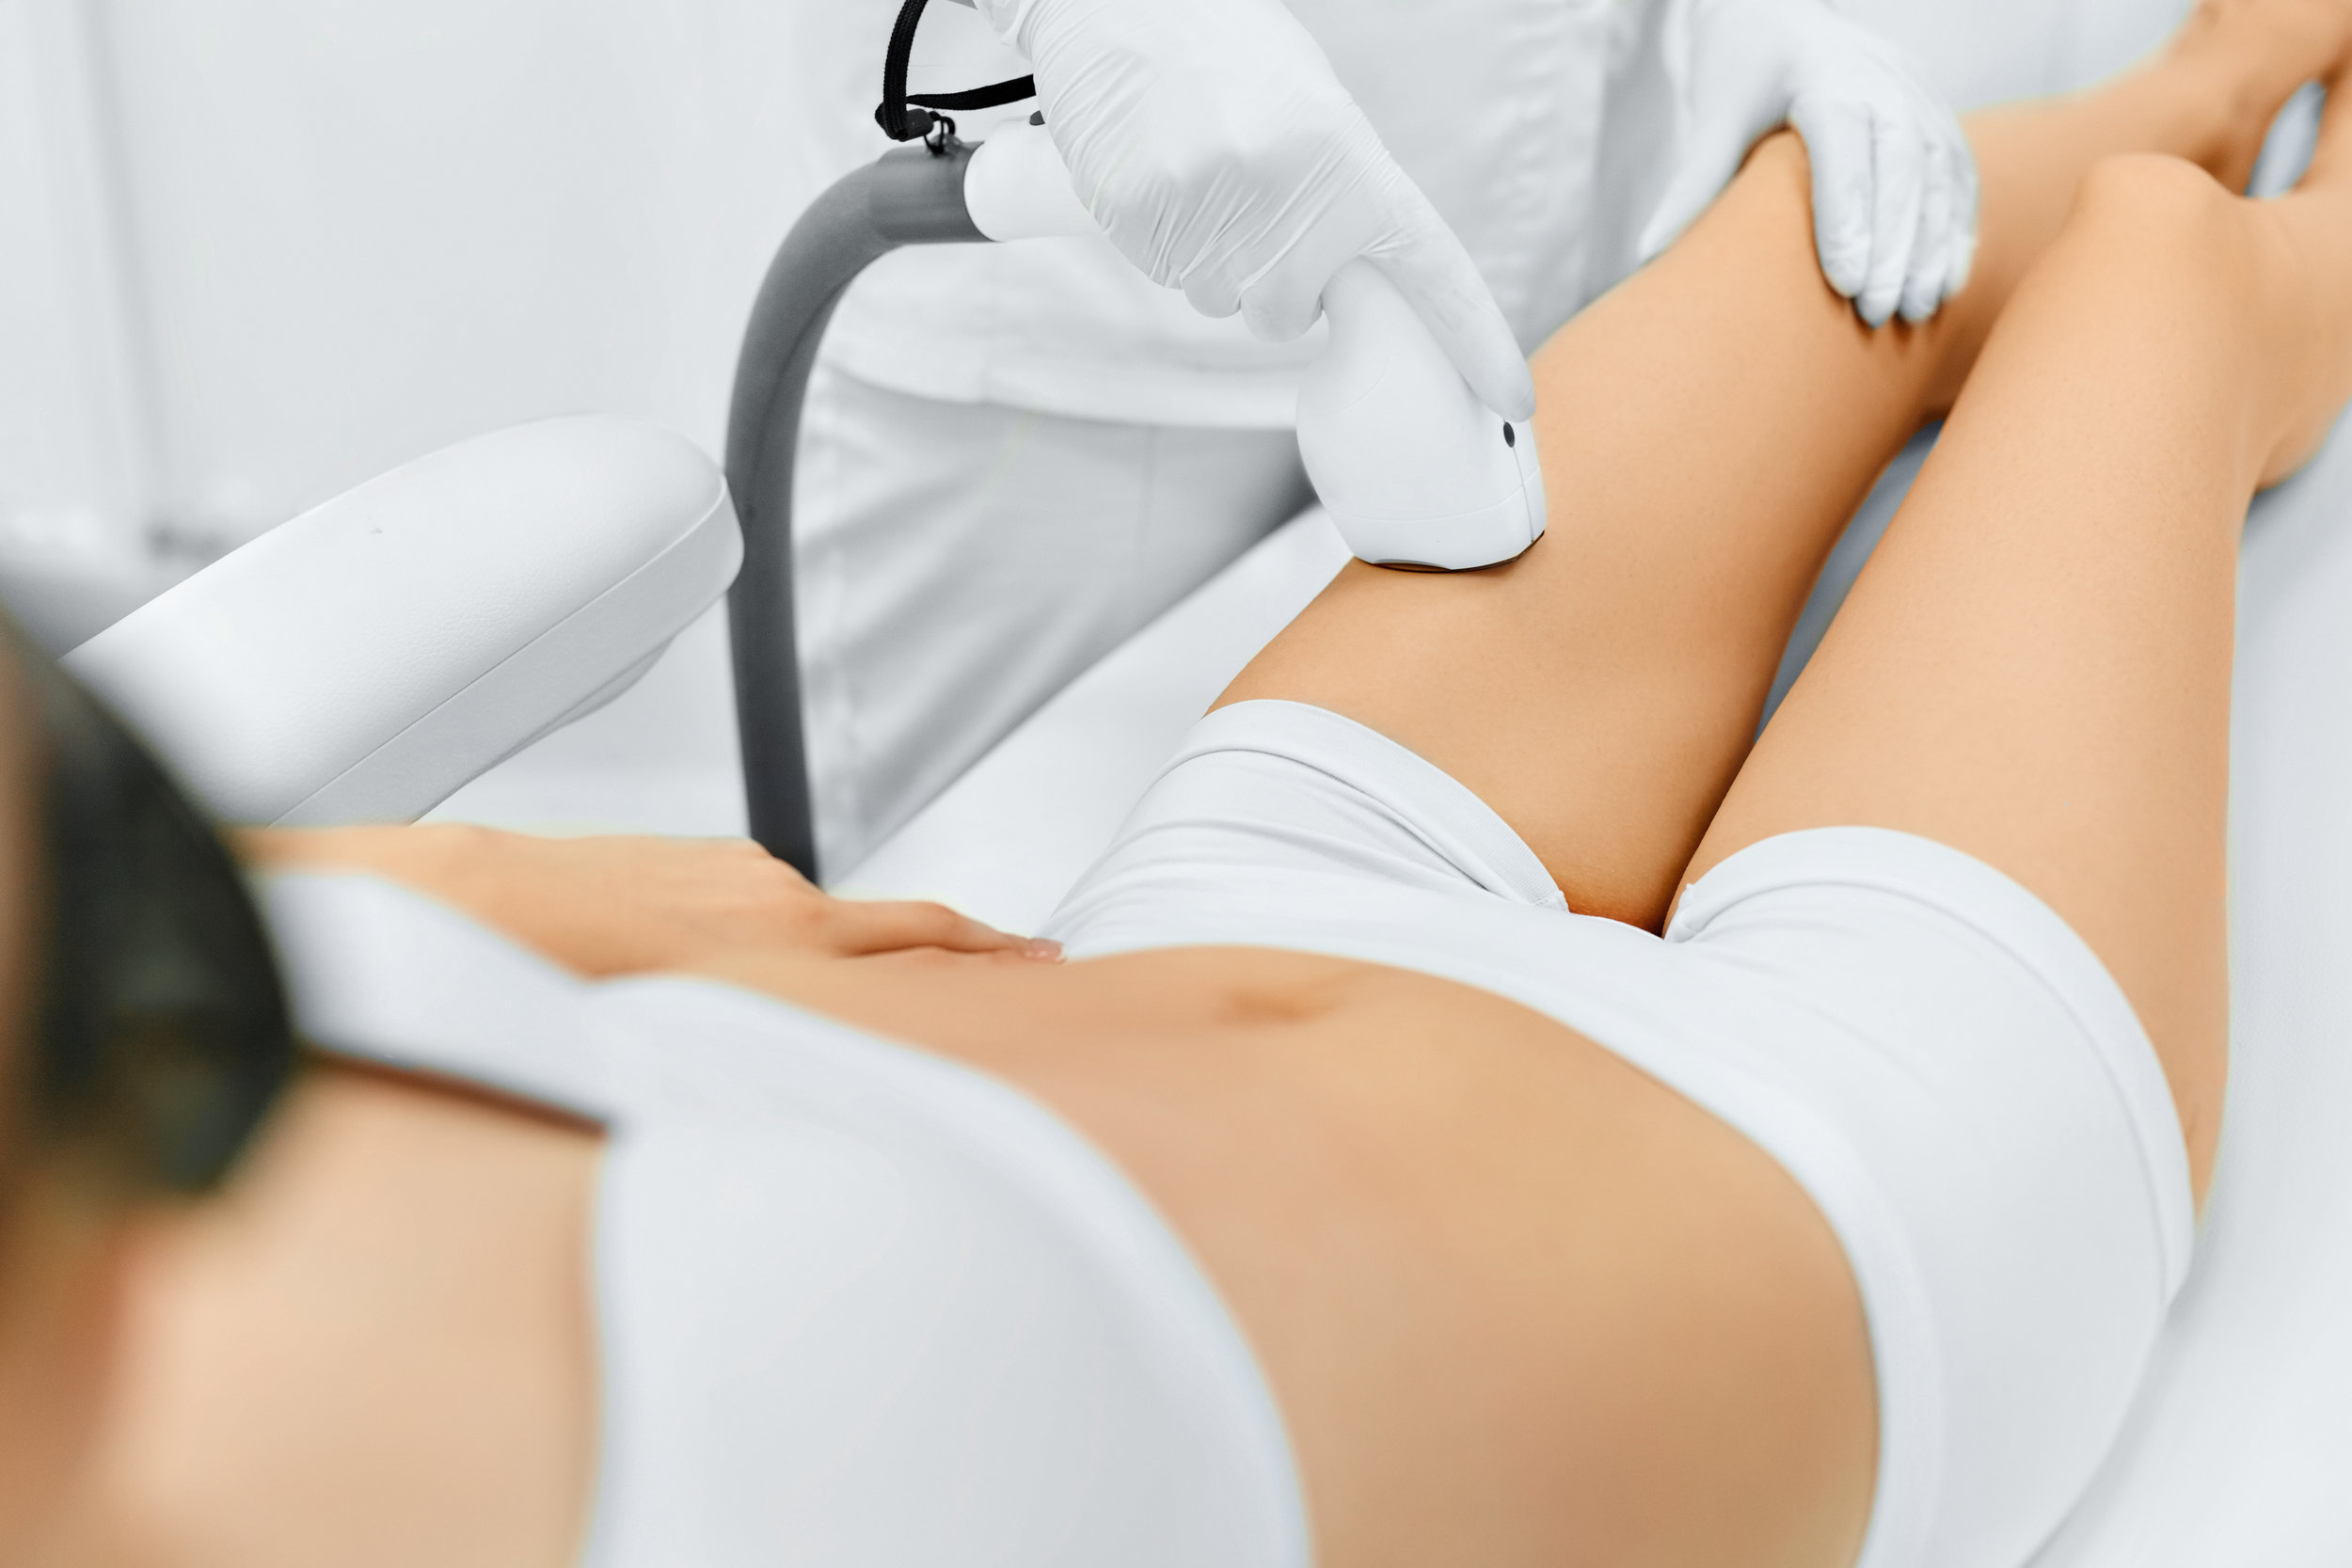 Best Laser Hair Removal in Denver: LightSheer Duet